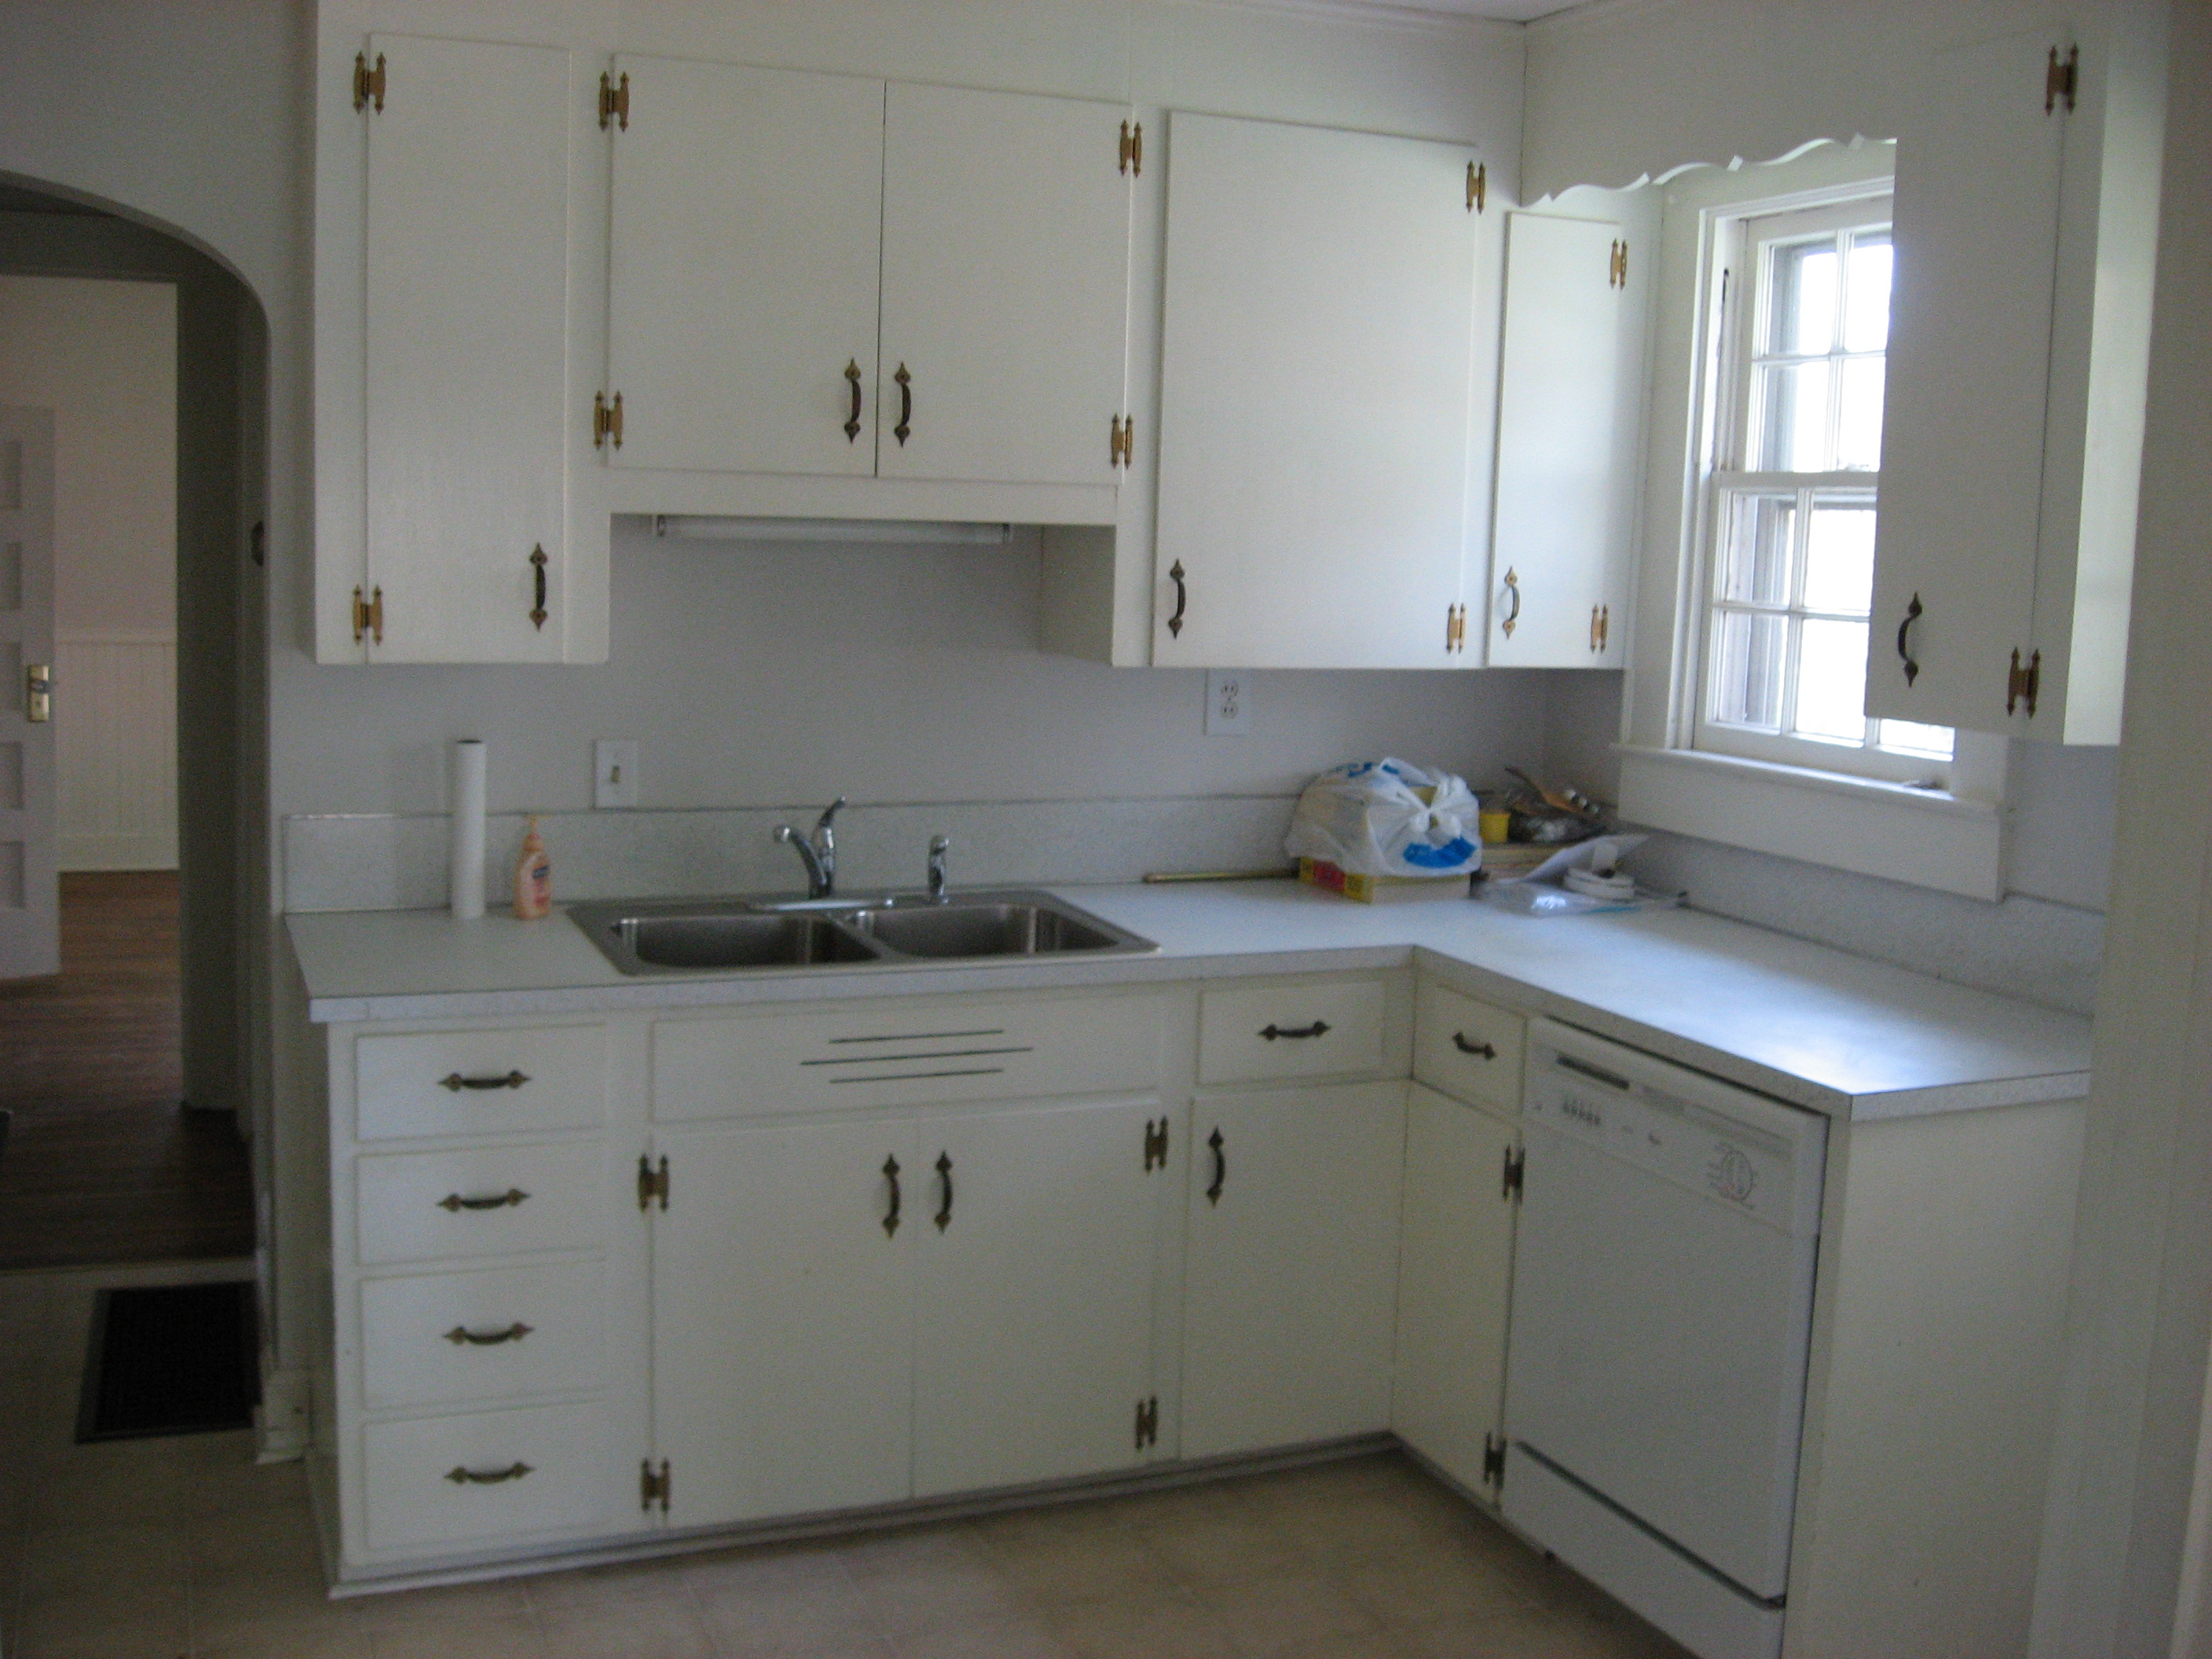 504 Walnut Kitchen Before